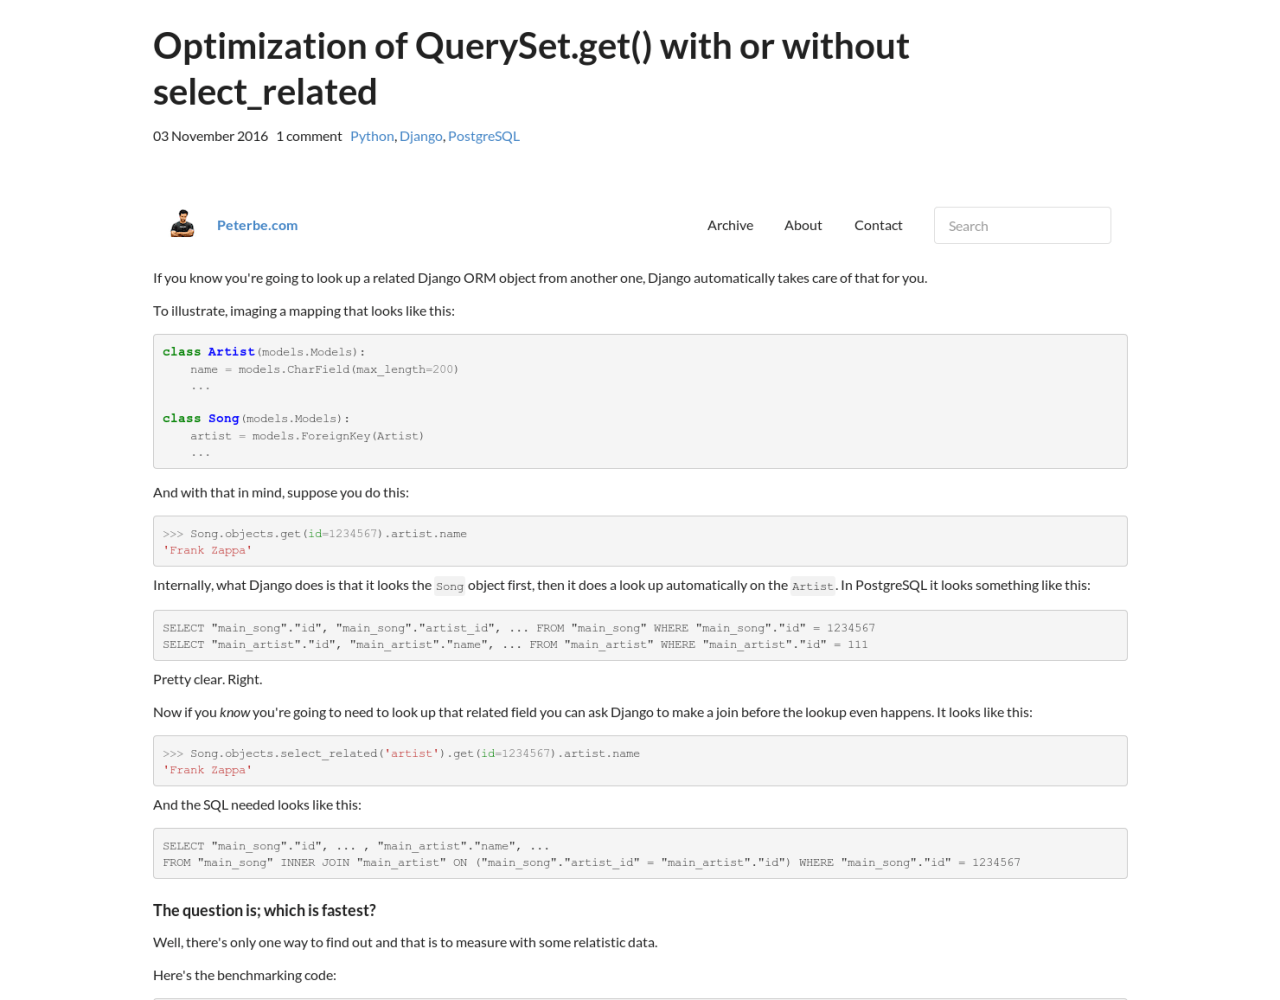 Optimization of QuerySet get() with or without